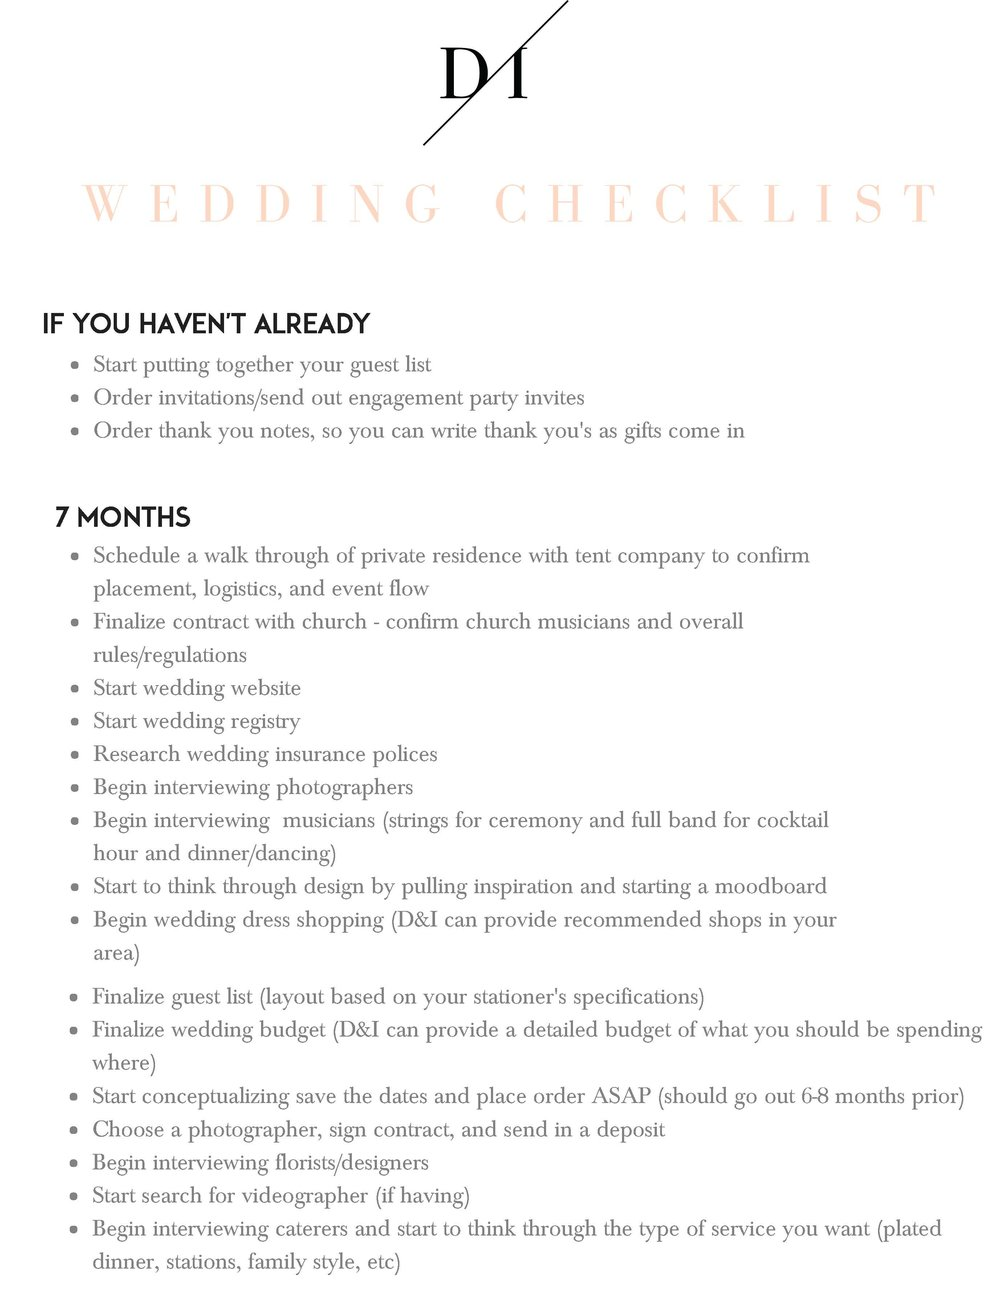 D&I Wedding Checklist- for blog and IG_Page_2.jpg